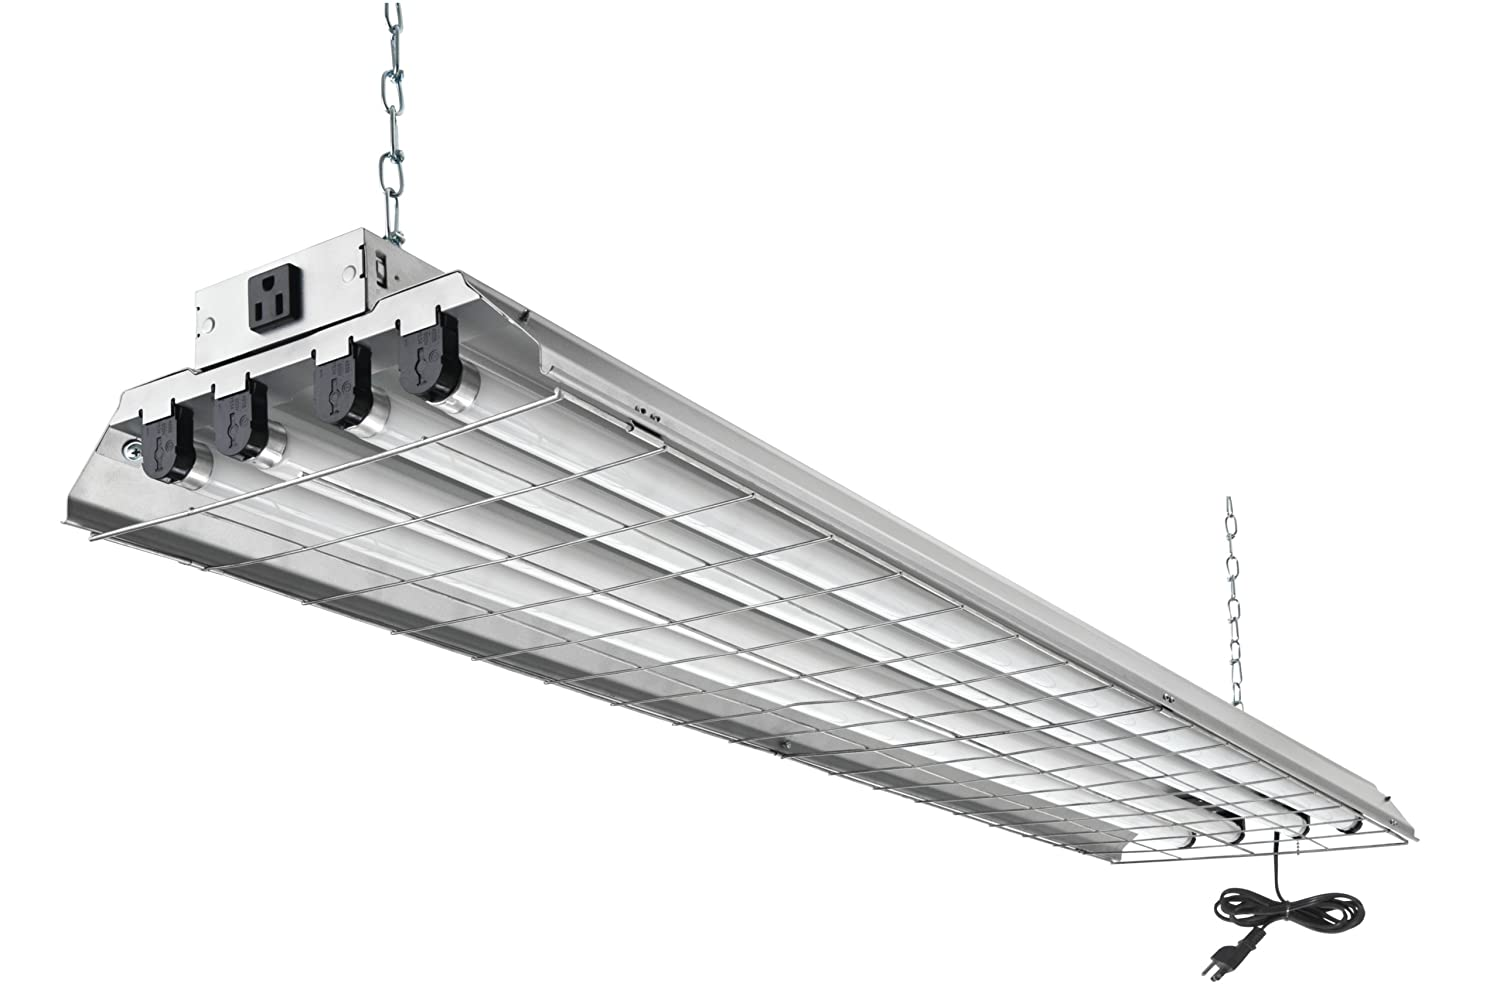 Lithonia Lighting 1284GRD RE 4-Light Heavy Duty Shoplight - Ceiling Pendant Fixtures - Amazon.com  sc 1 st  Amazon.com & Lithonia Lighting 1284GRD RE 4-Light Heavy Duty Shoplight - Ceiling ...